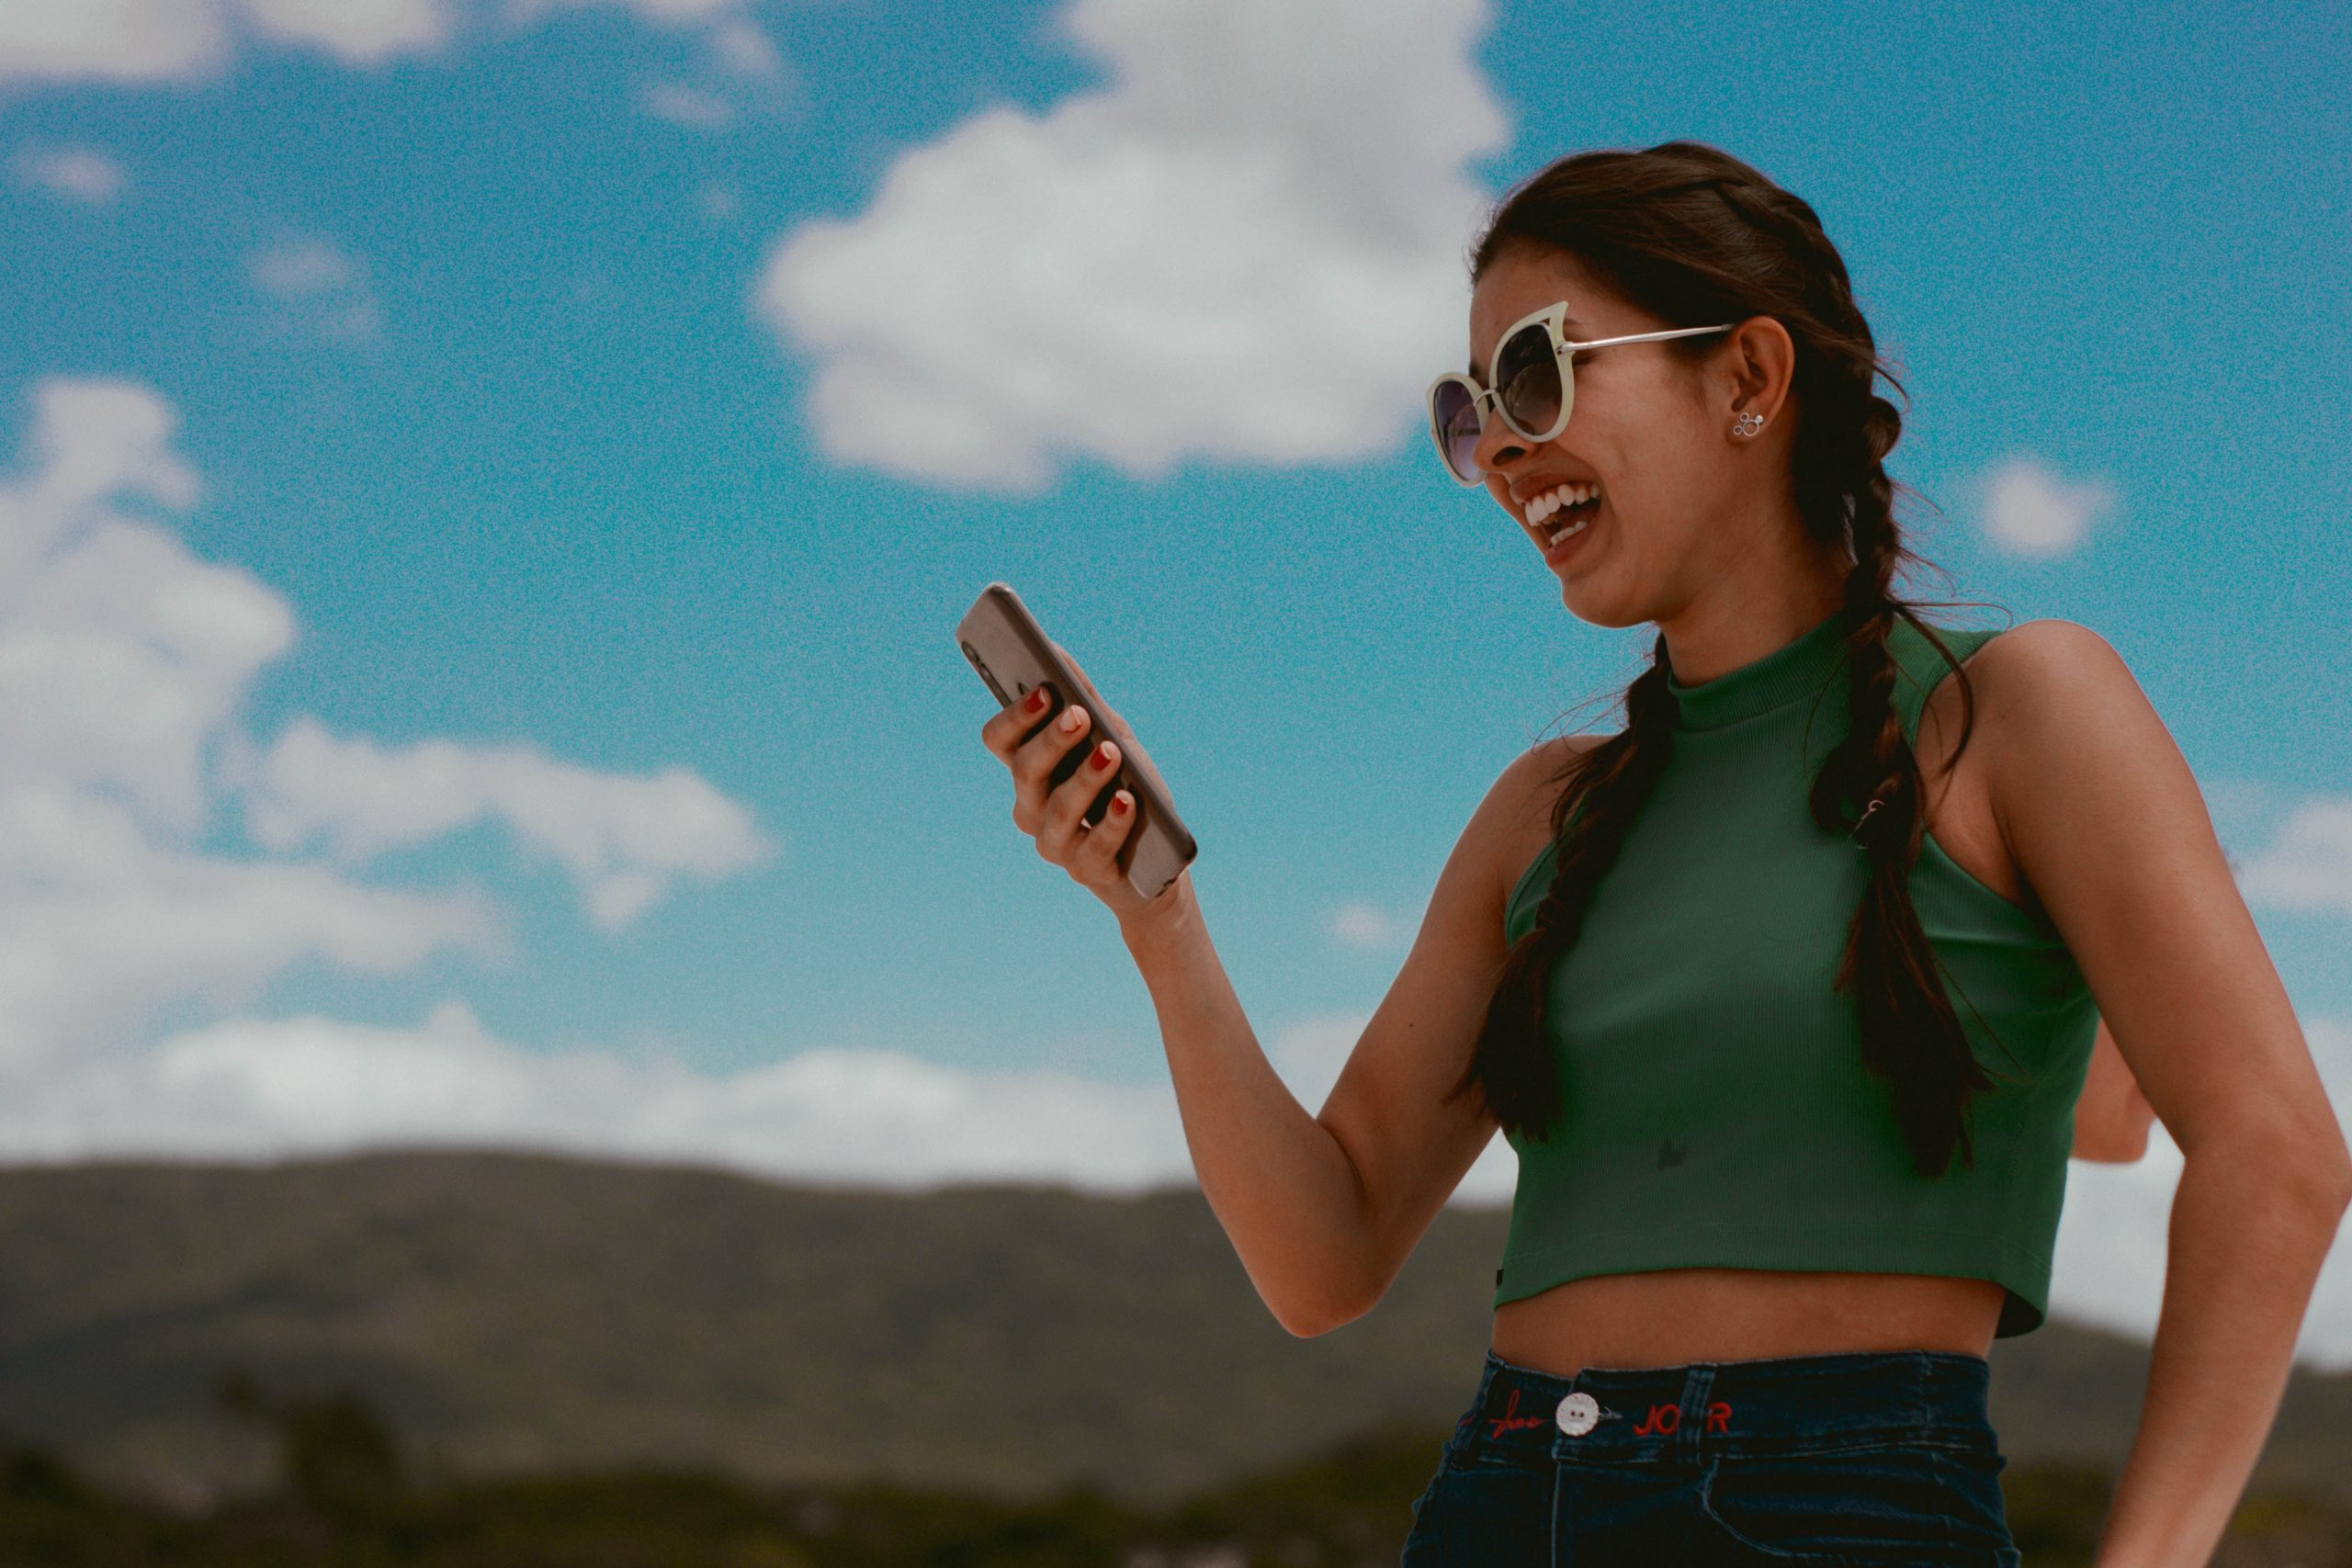 woman in green tank top holding smartphone during daytime